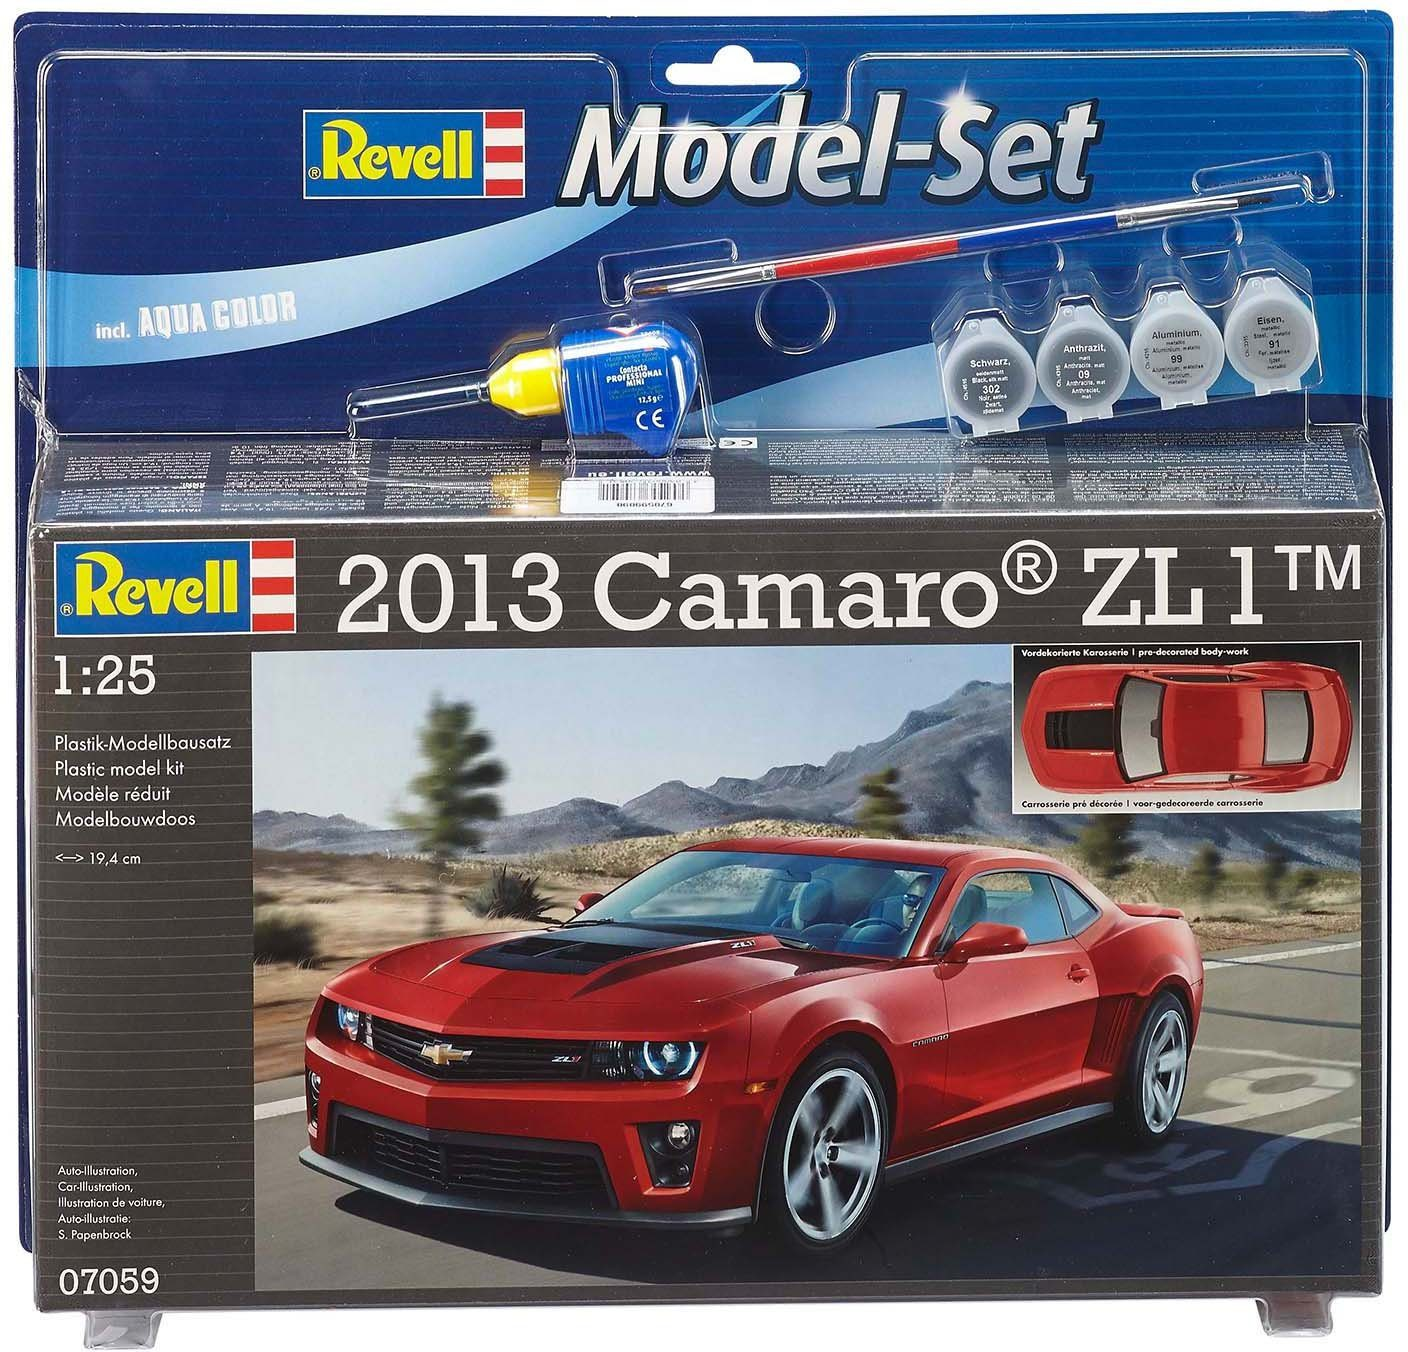 Revell Modellbausatz mit Аксессуар, Maßstab 1:24, »Model Set, Chevrolet Camaro 2013 ZL1«